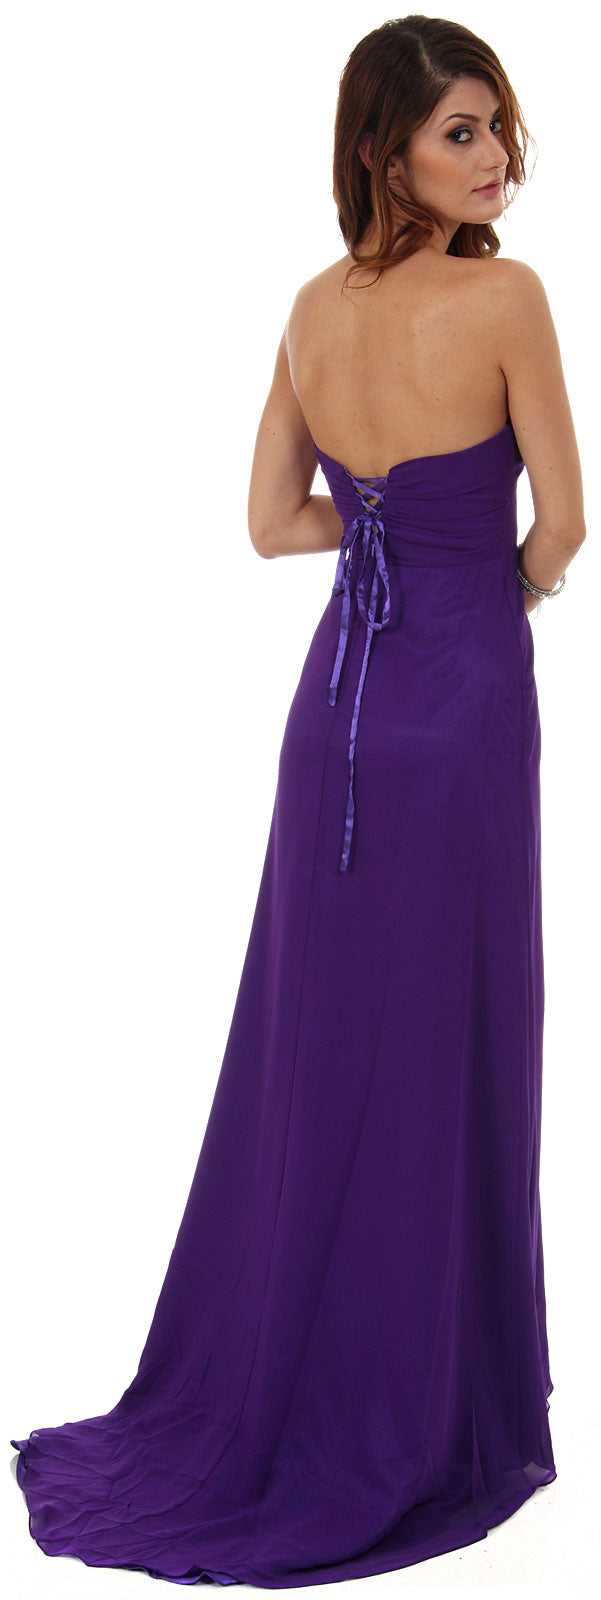 Image of Strapless Long Bridesmaid Dress With Ruffled Side Slit  back in Purple